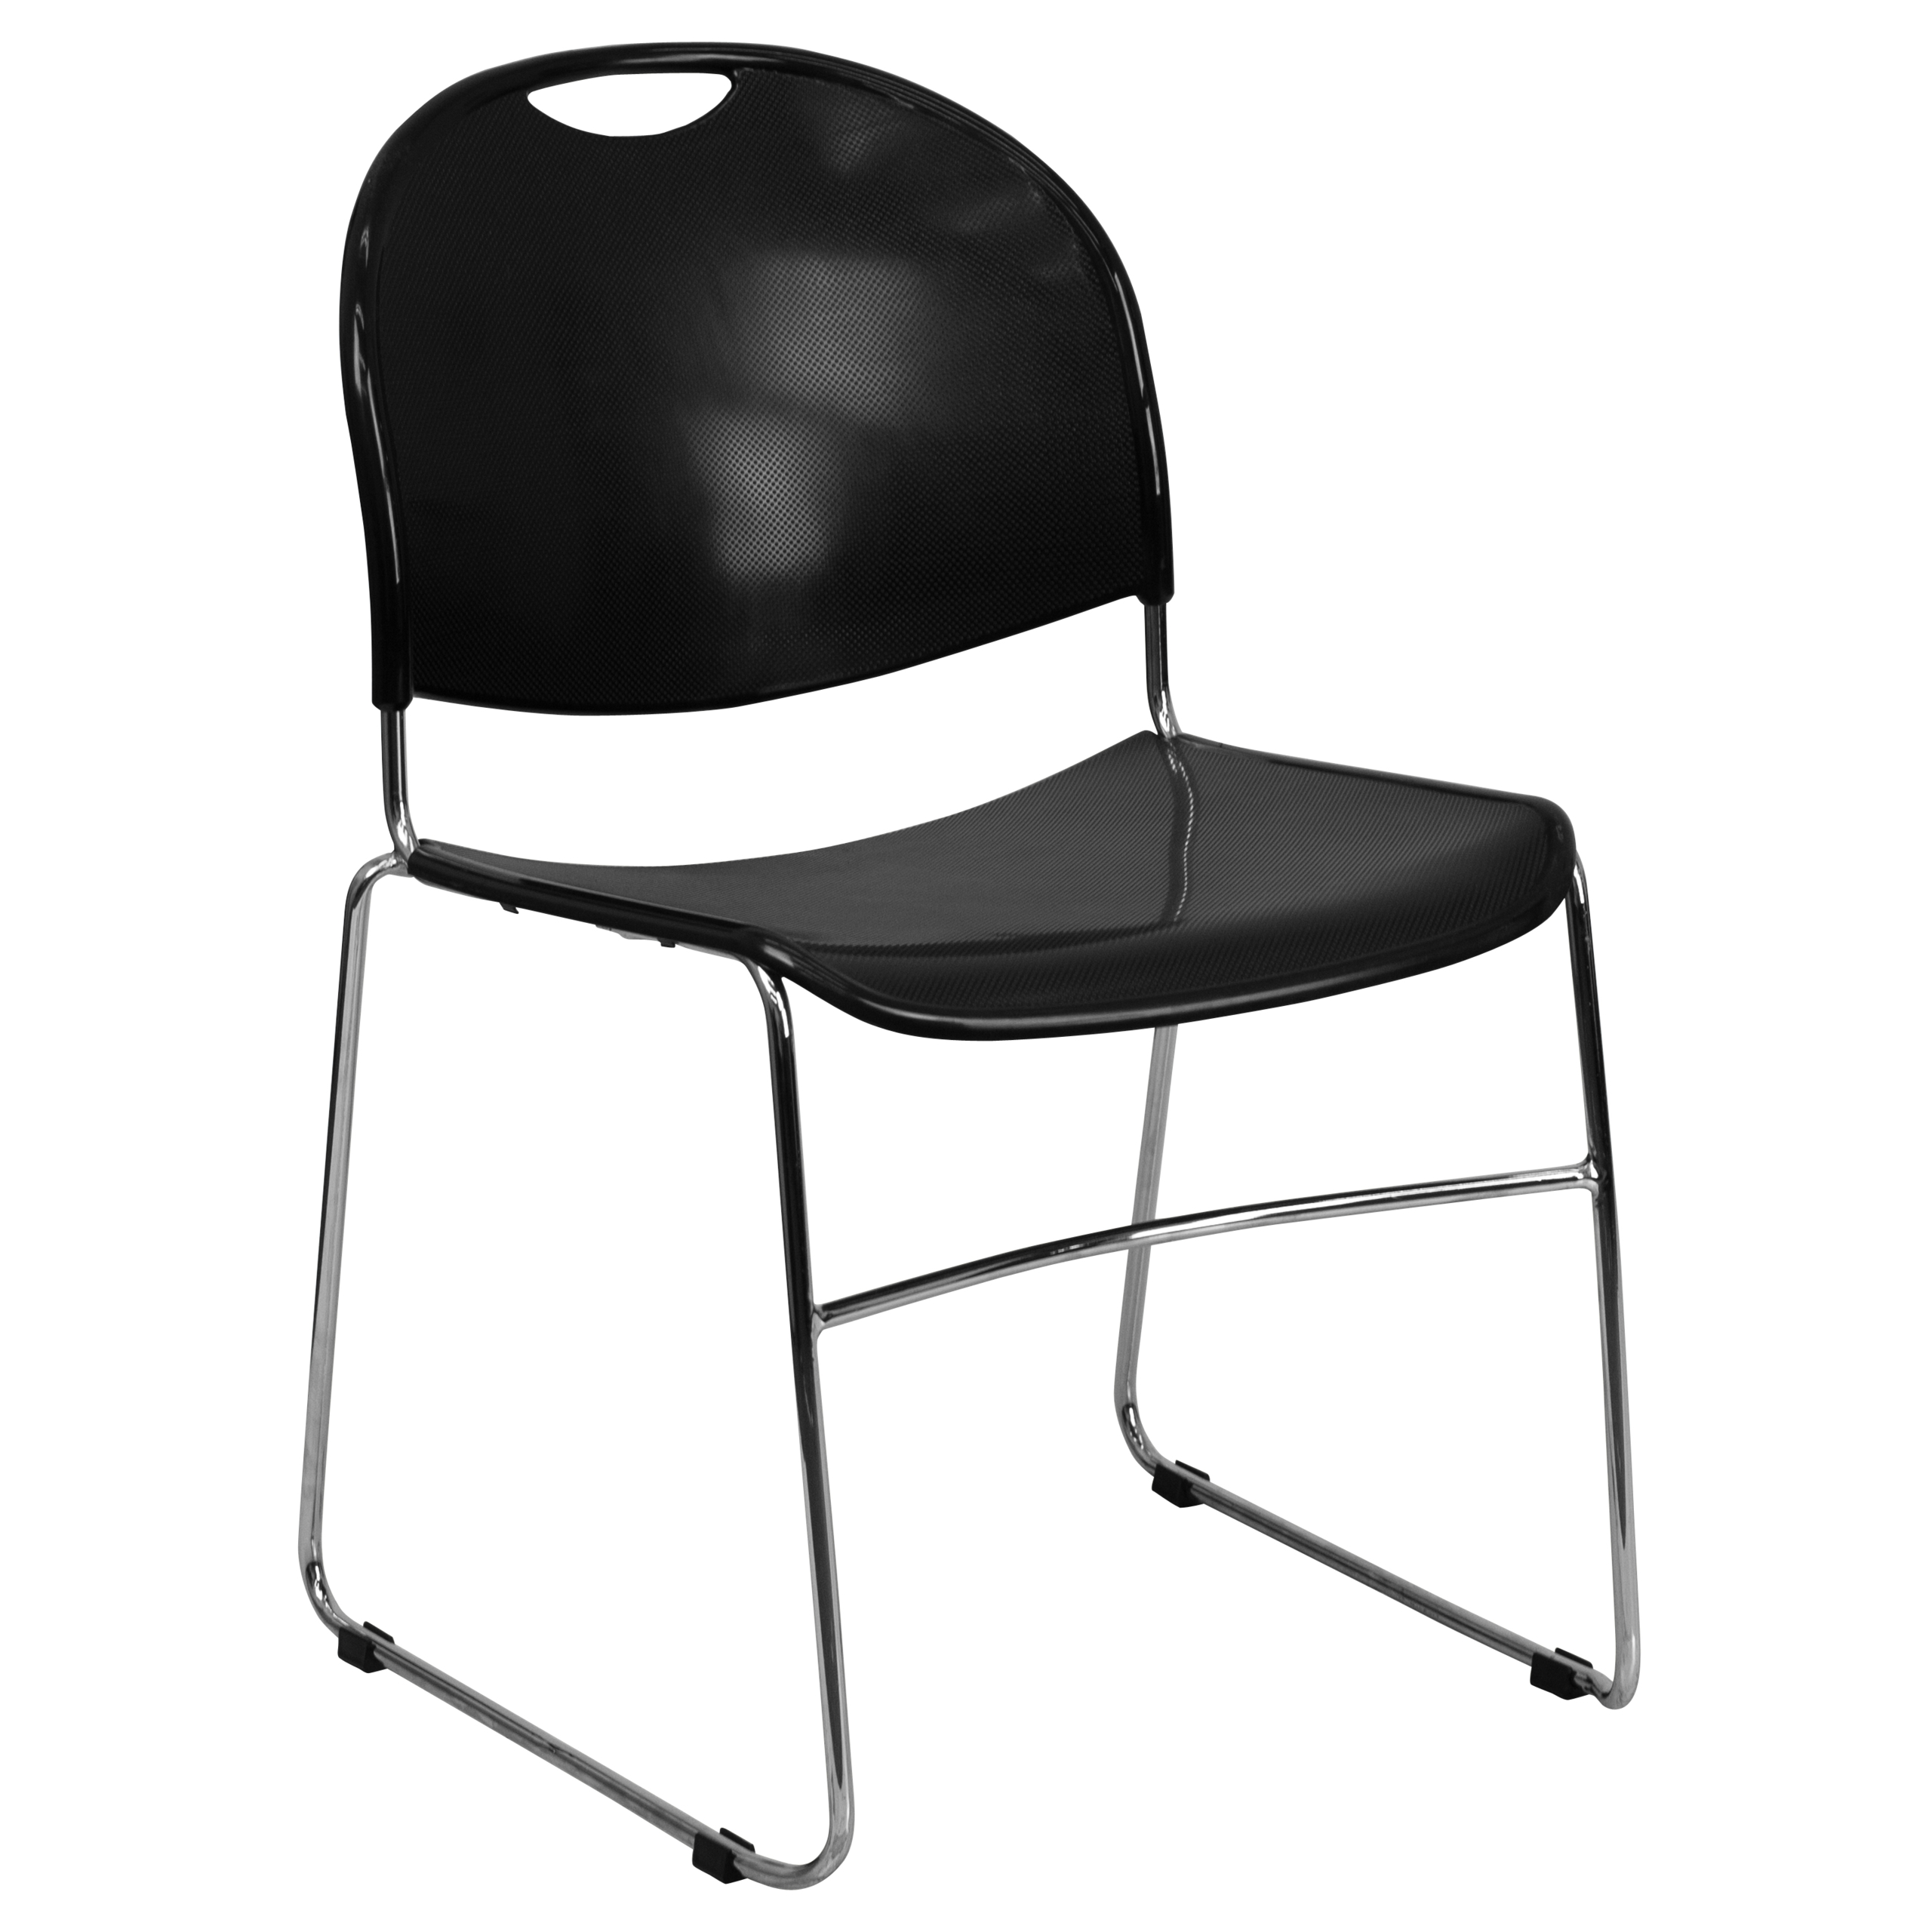 Charming Plastic Stacking Chairs 3